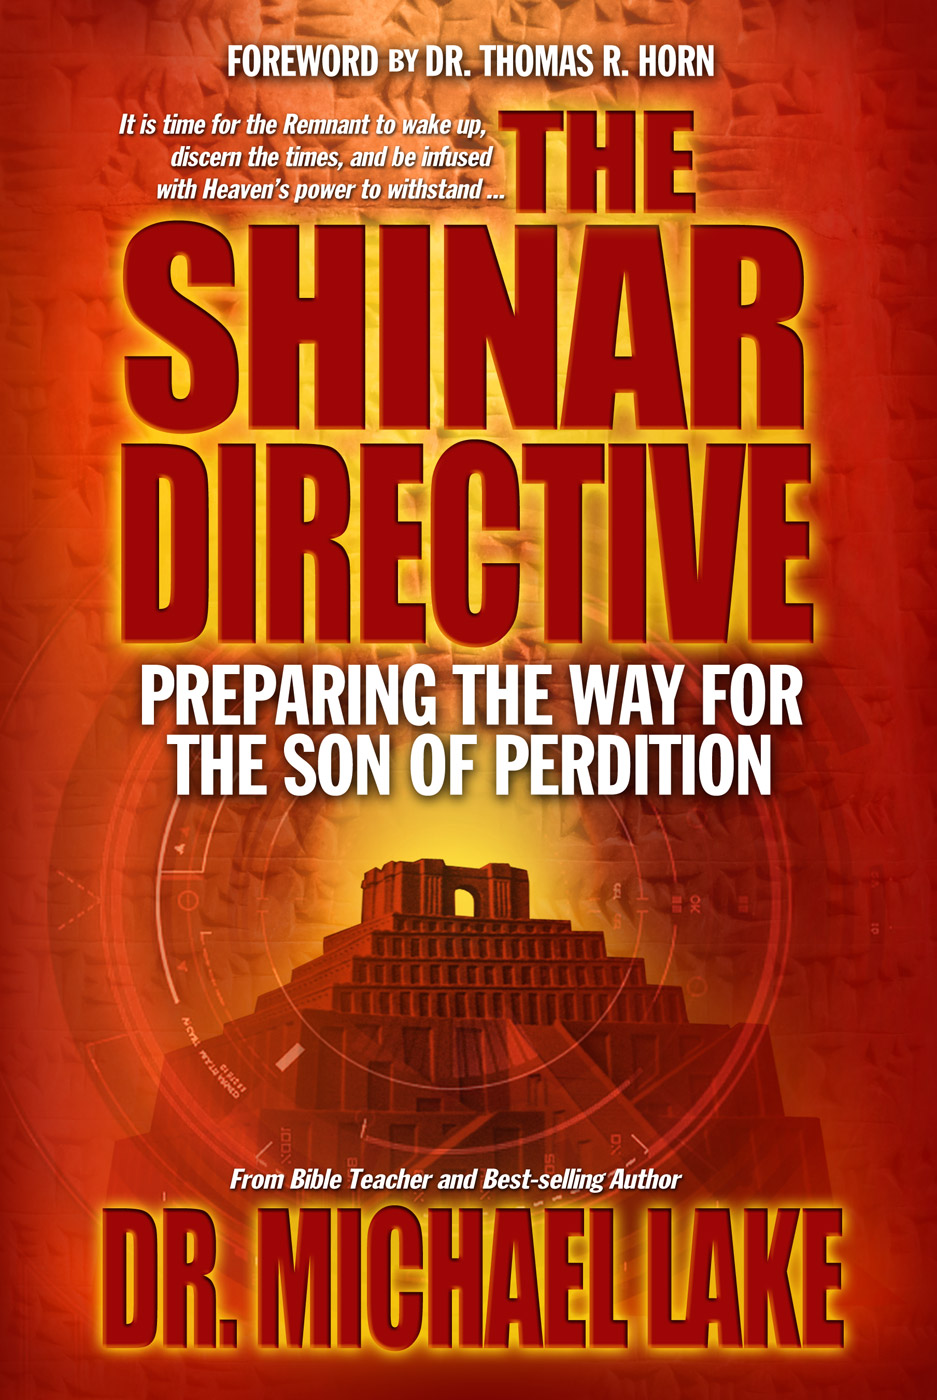 Shinar directive kingdom intelligence briefing the shinar directive book cover fandeluxe Gallery